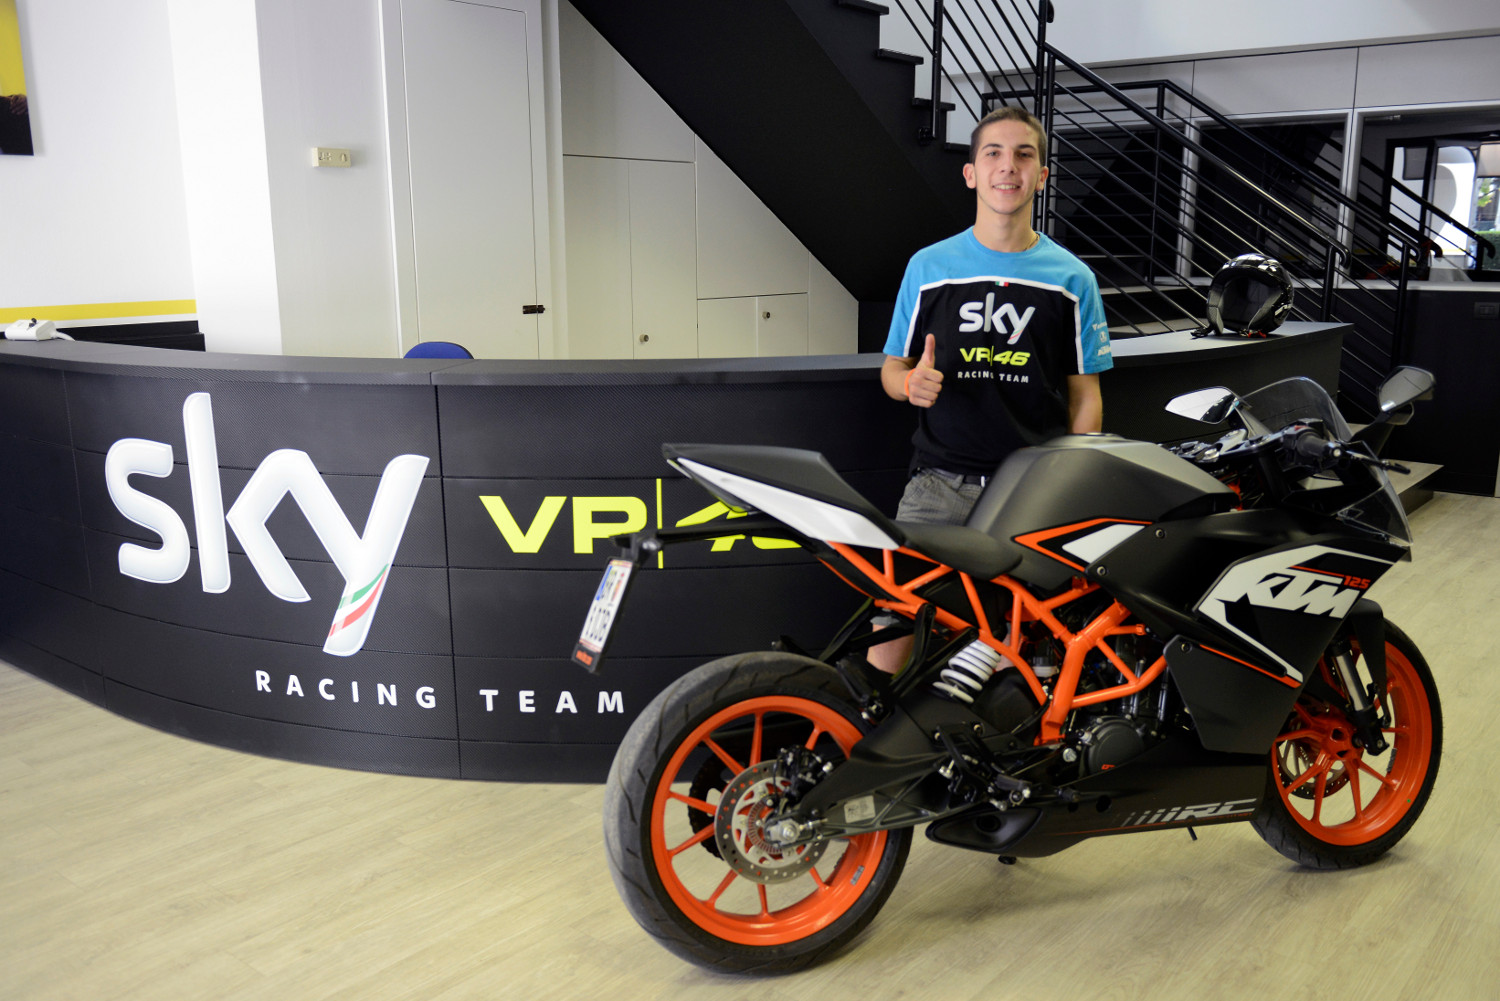 andrea migno about racing with sky racing team vr46 and ktm   ktm blog